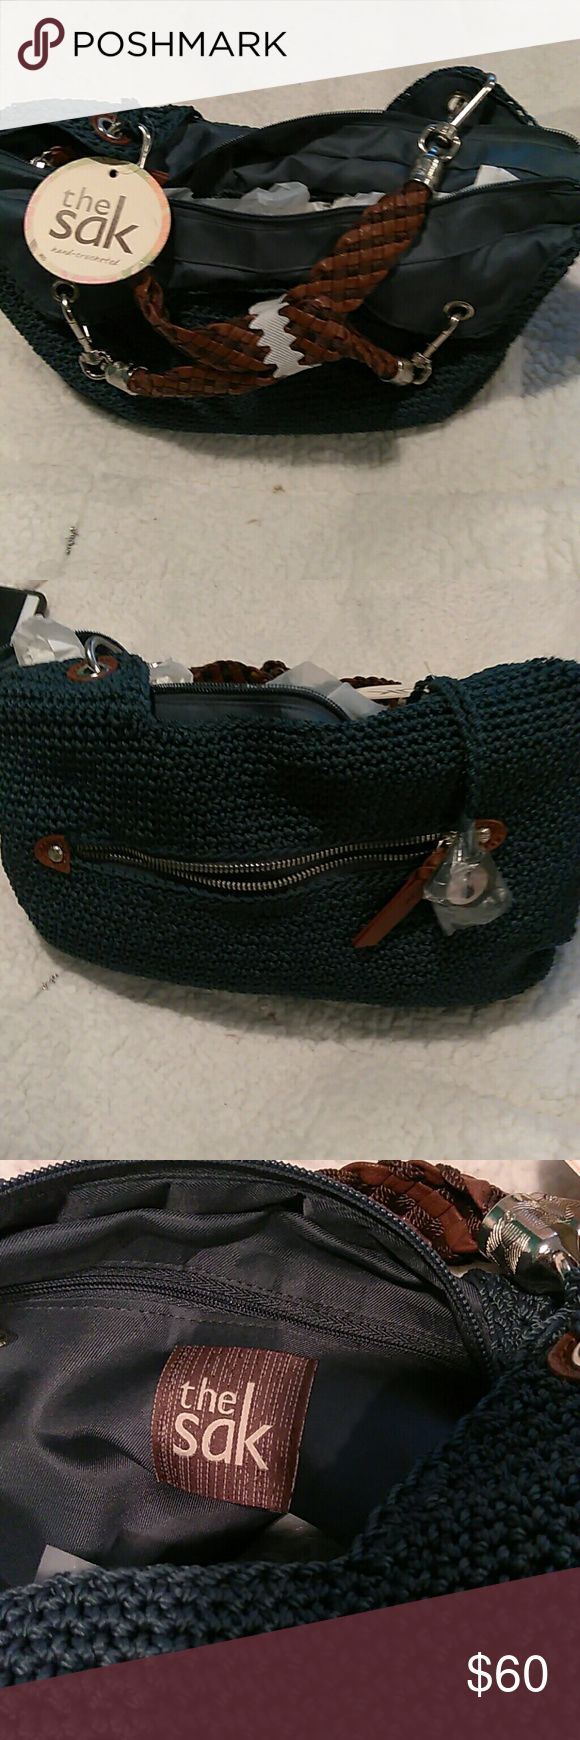 "Indio sak satchel large shoulder bag Polypropylene Crochet?  100% Man made lining? Zipper closure.? 10"" shoulder drop? 10.5"" high? 13.5"" wide? L 16.5""? W 5""? H 11""? Strap drop: 10.5""?  Front zip pocket? Back slit pocket? Lining features a back wall zip pocket and two multi functions pockets. sak Bags Shoulder Bags"